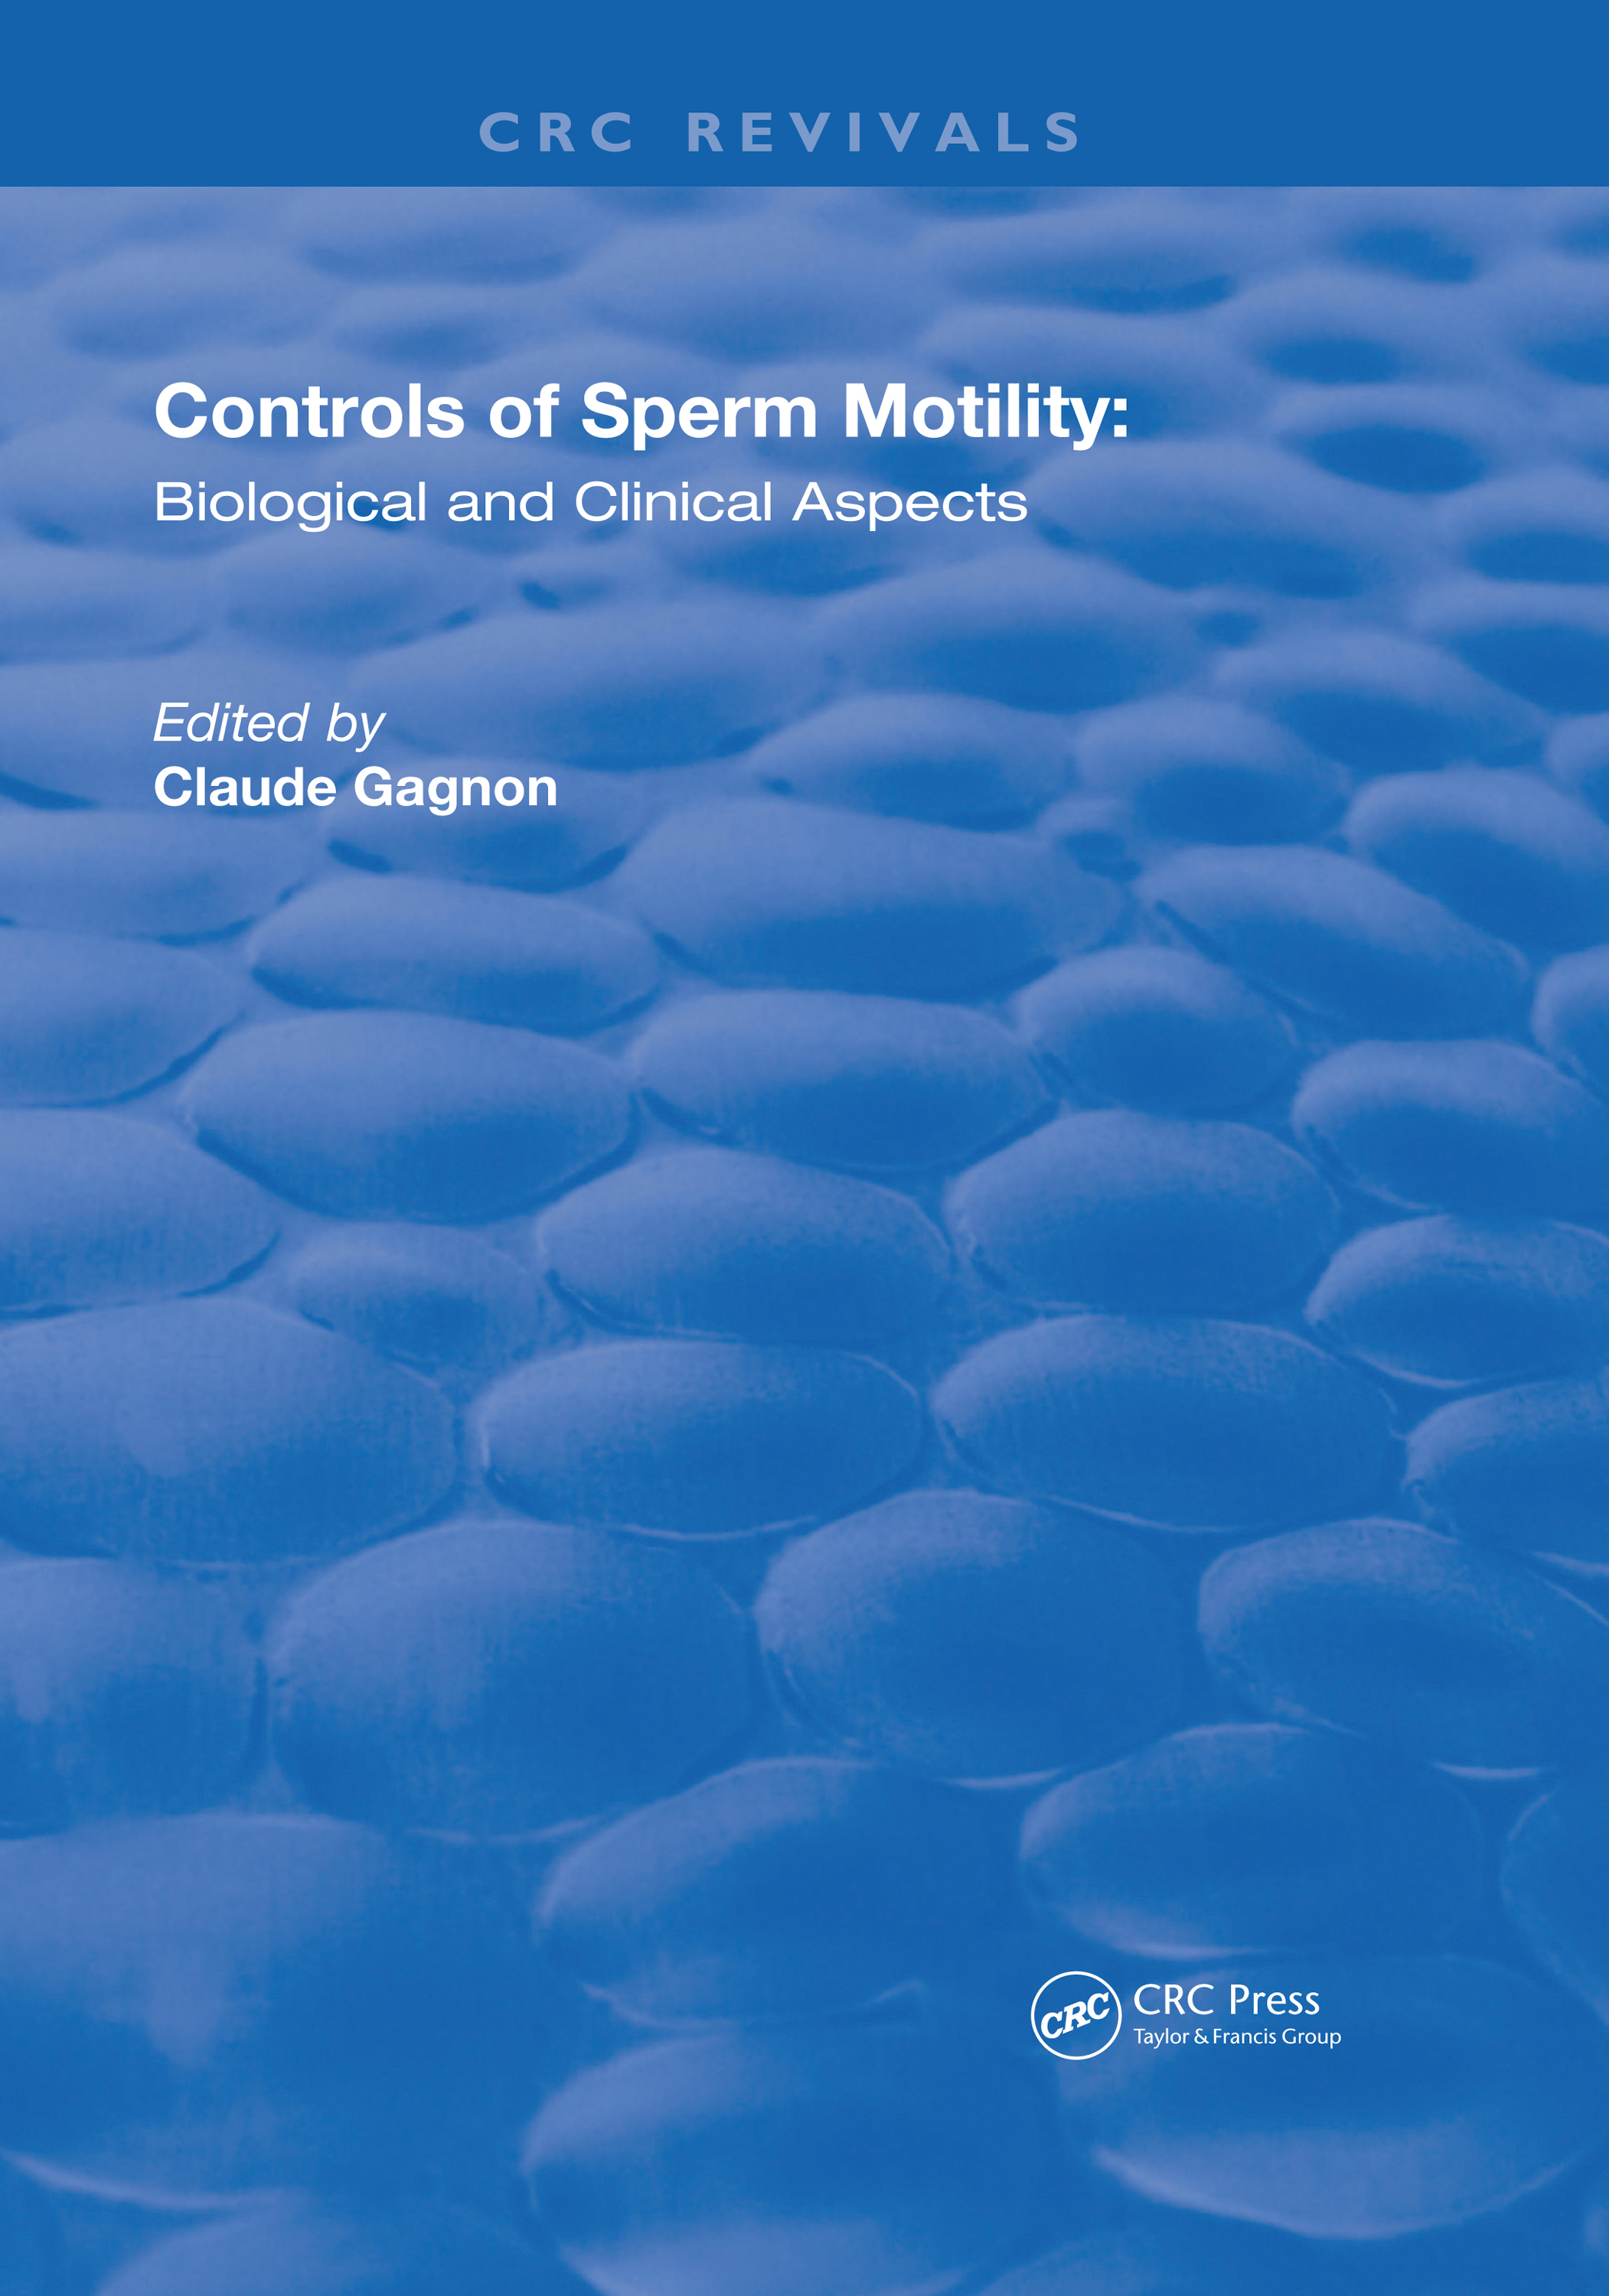 Clinical Management of Men With Disorders of Sperm Motility